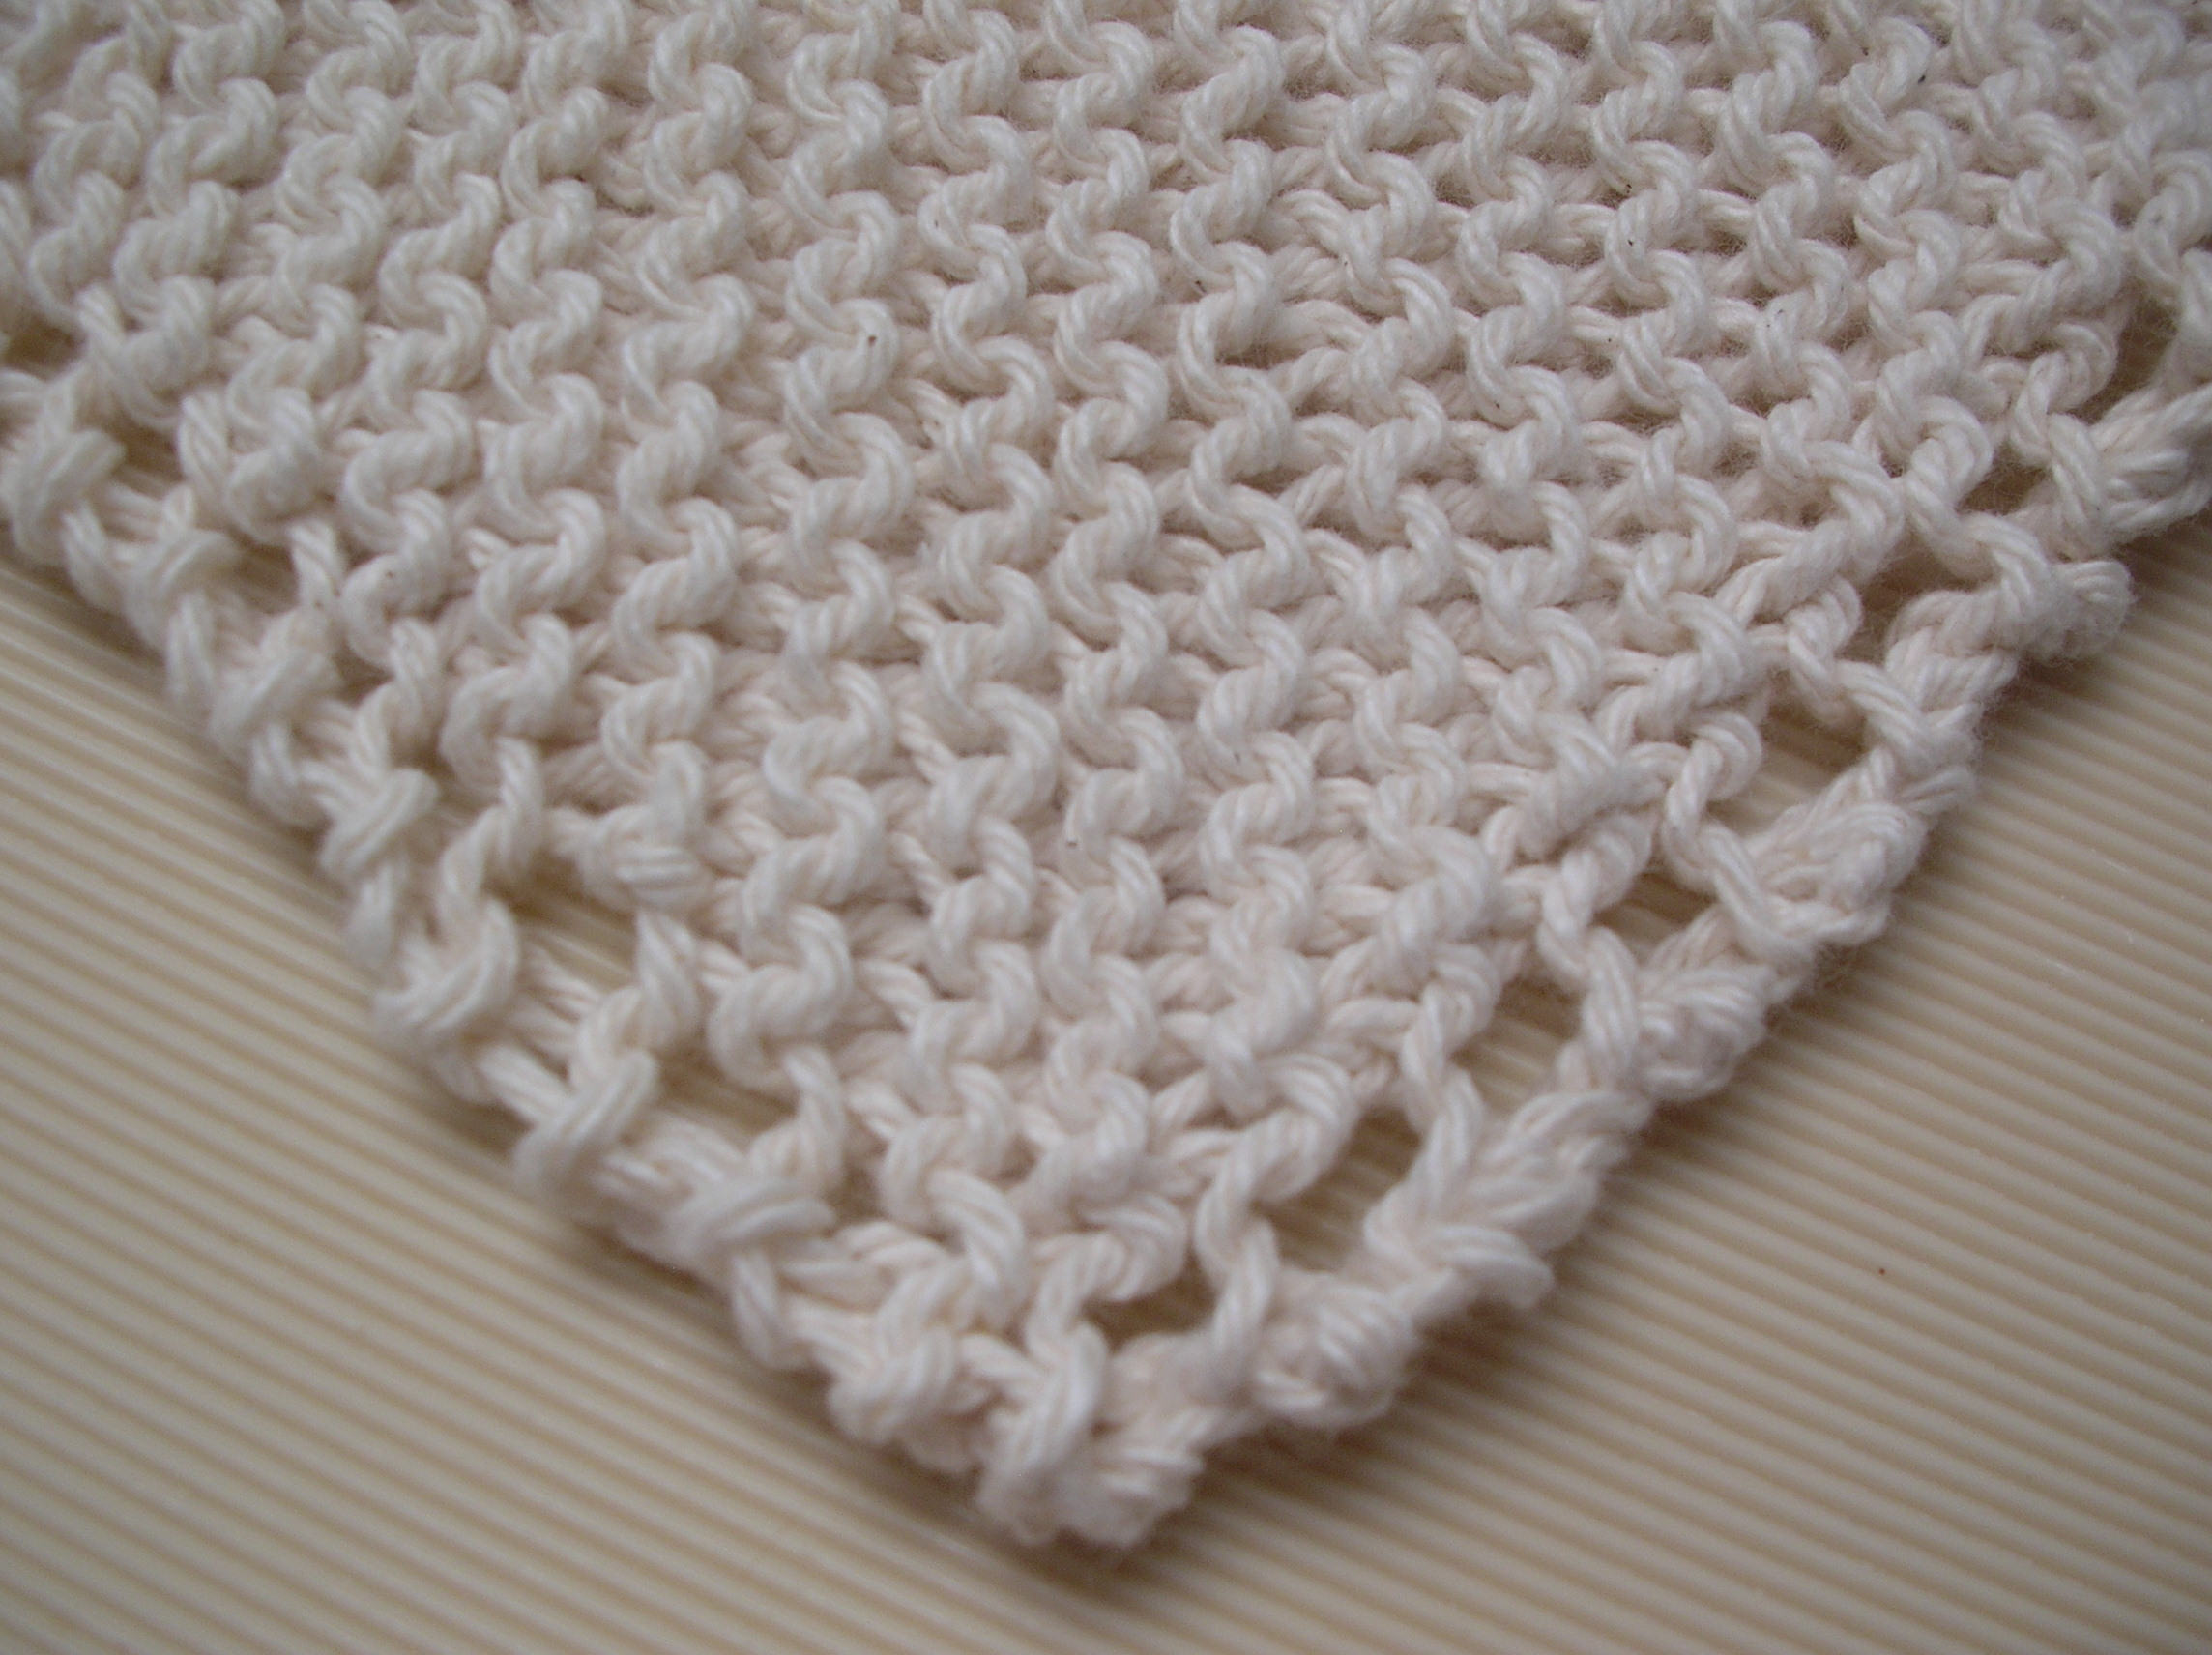 Crochet Patterns Using Cotton Yarn : 34 New Crochet Dishcloth Patterns For Free Patterns Hub